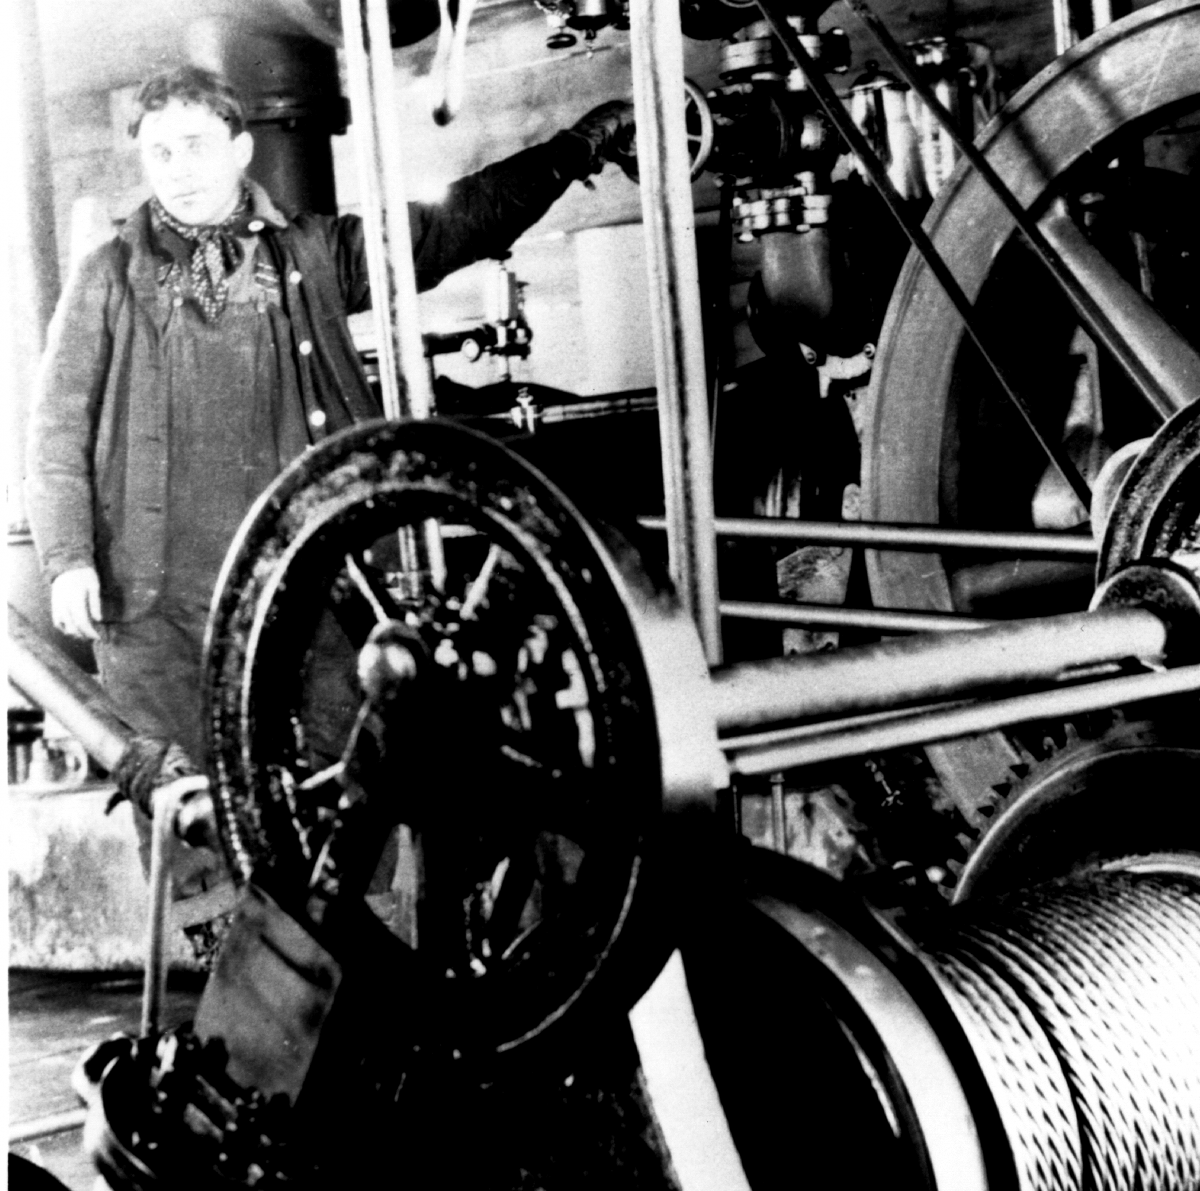 Black and white photo of worker standing at paper mill machinery circa 1900